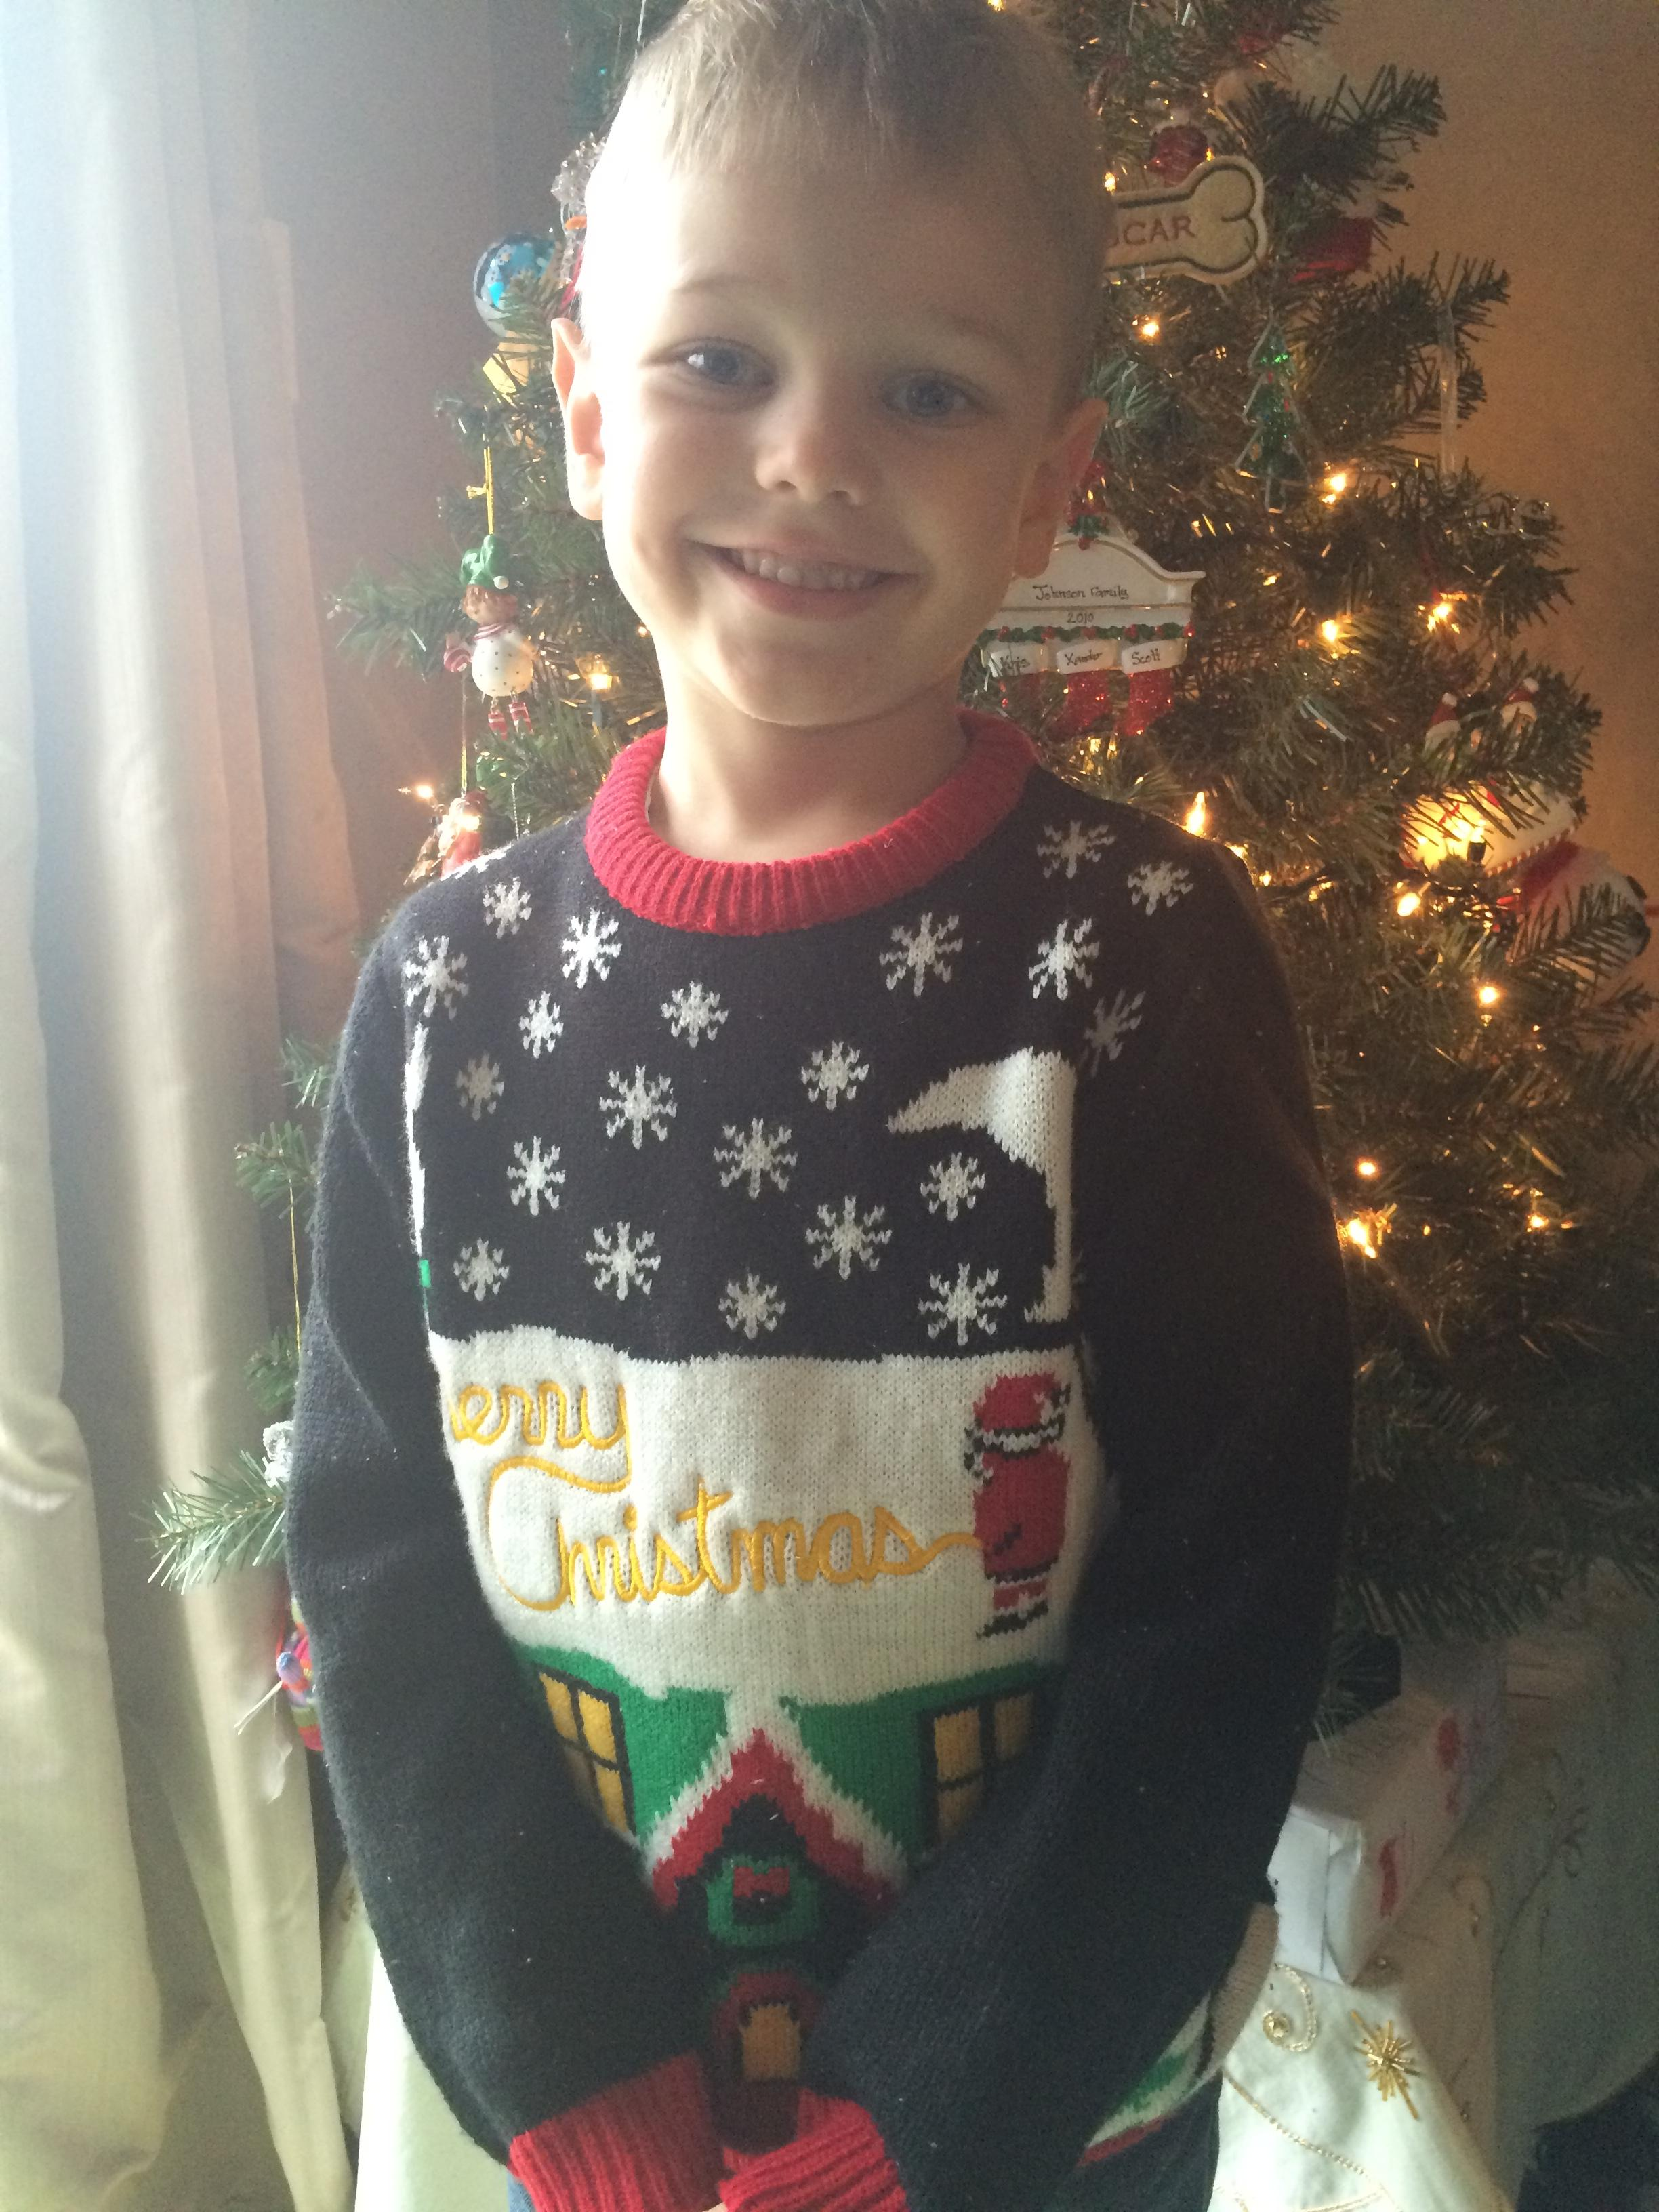 Dad accidentally sends his son to school wearing this naughty Christmas jumper